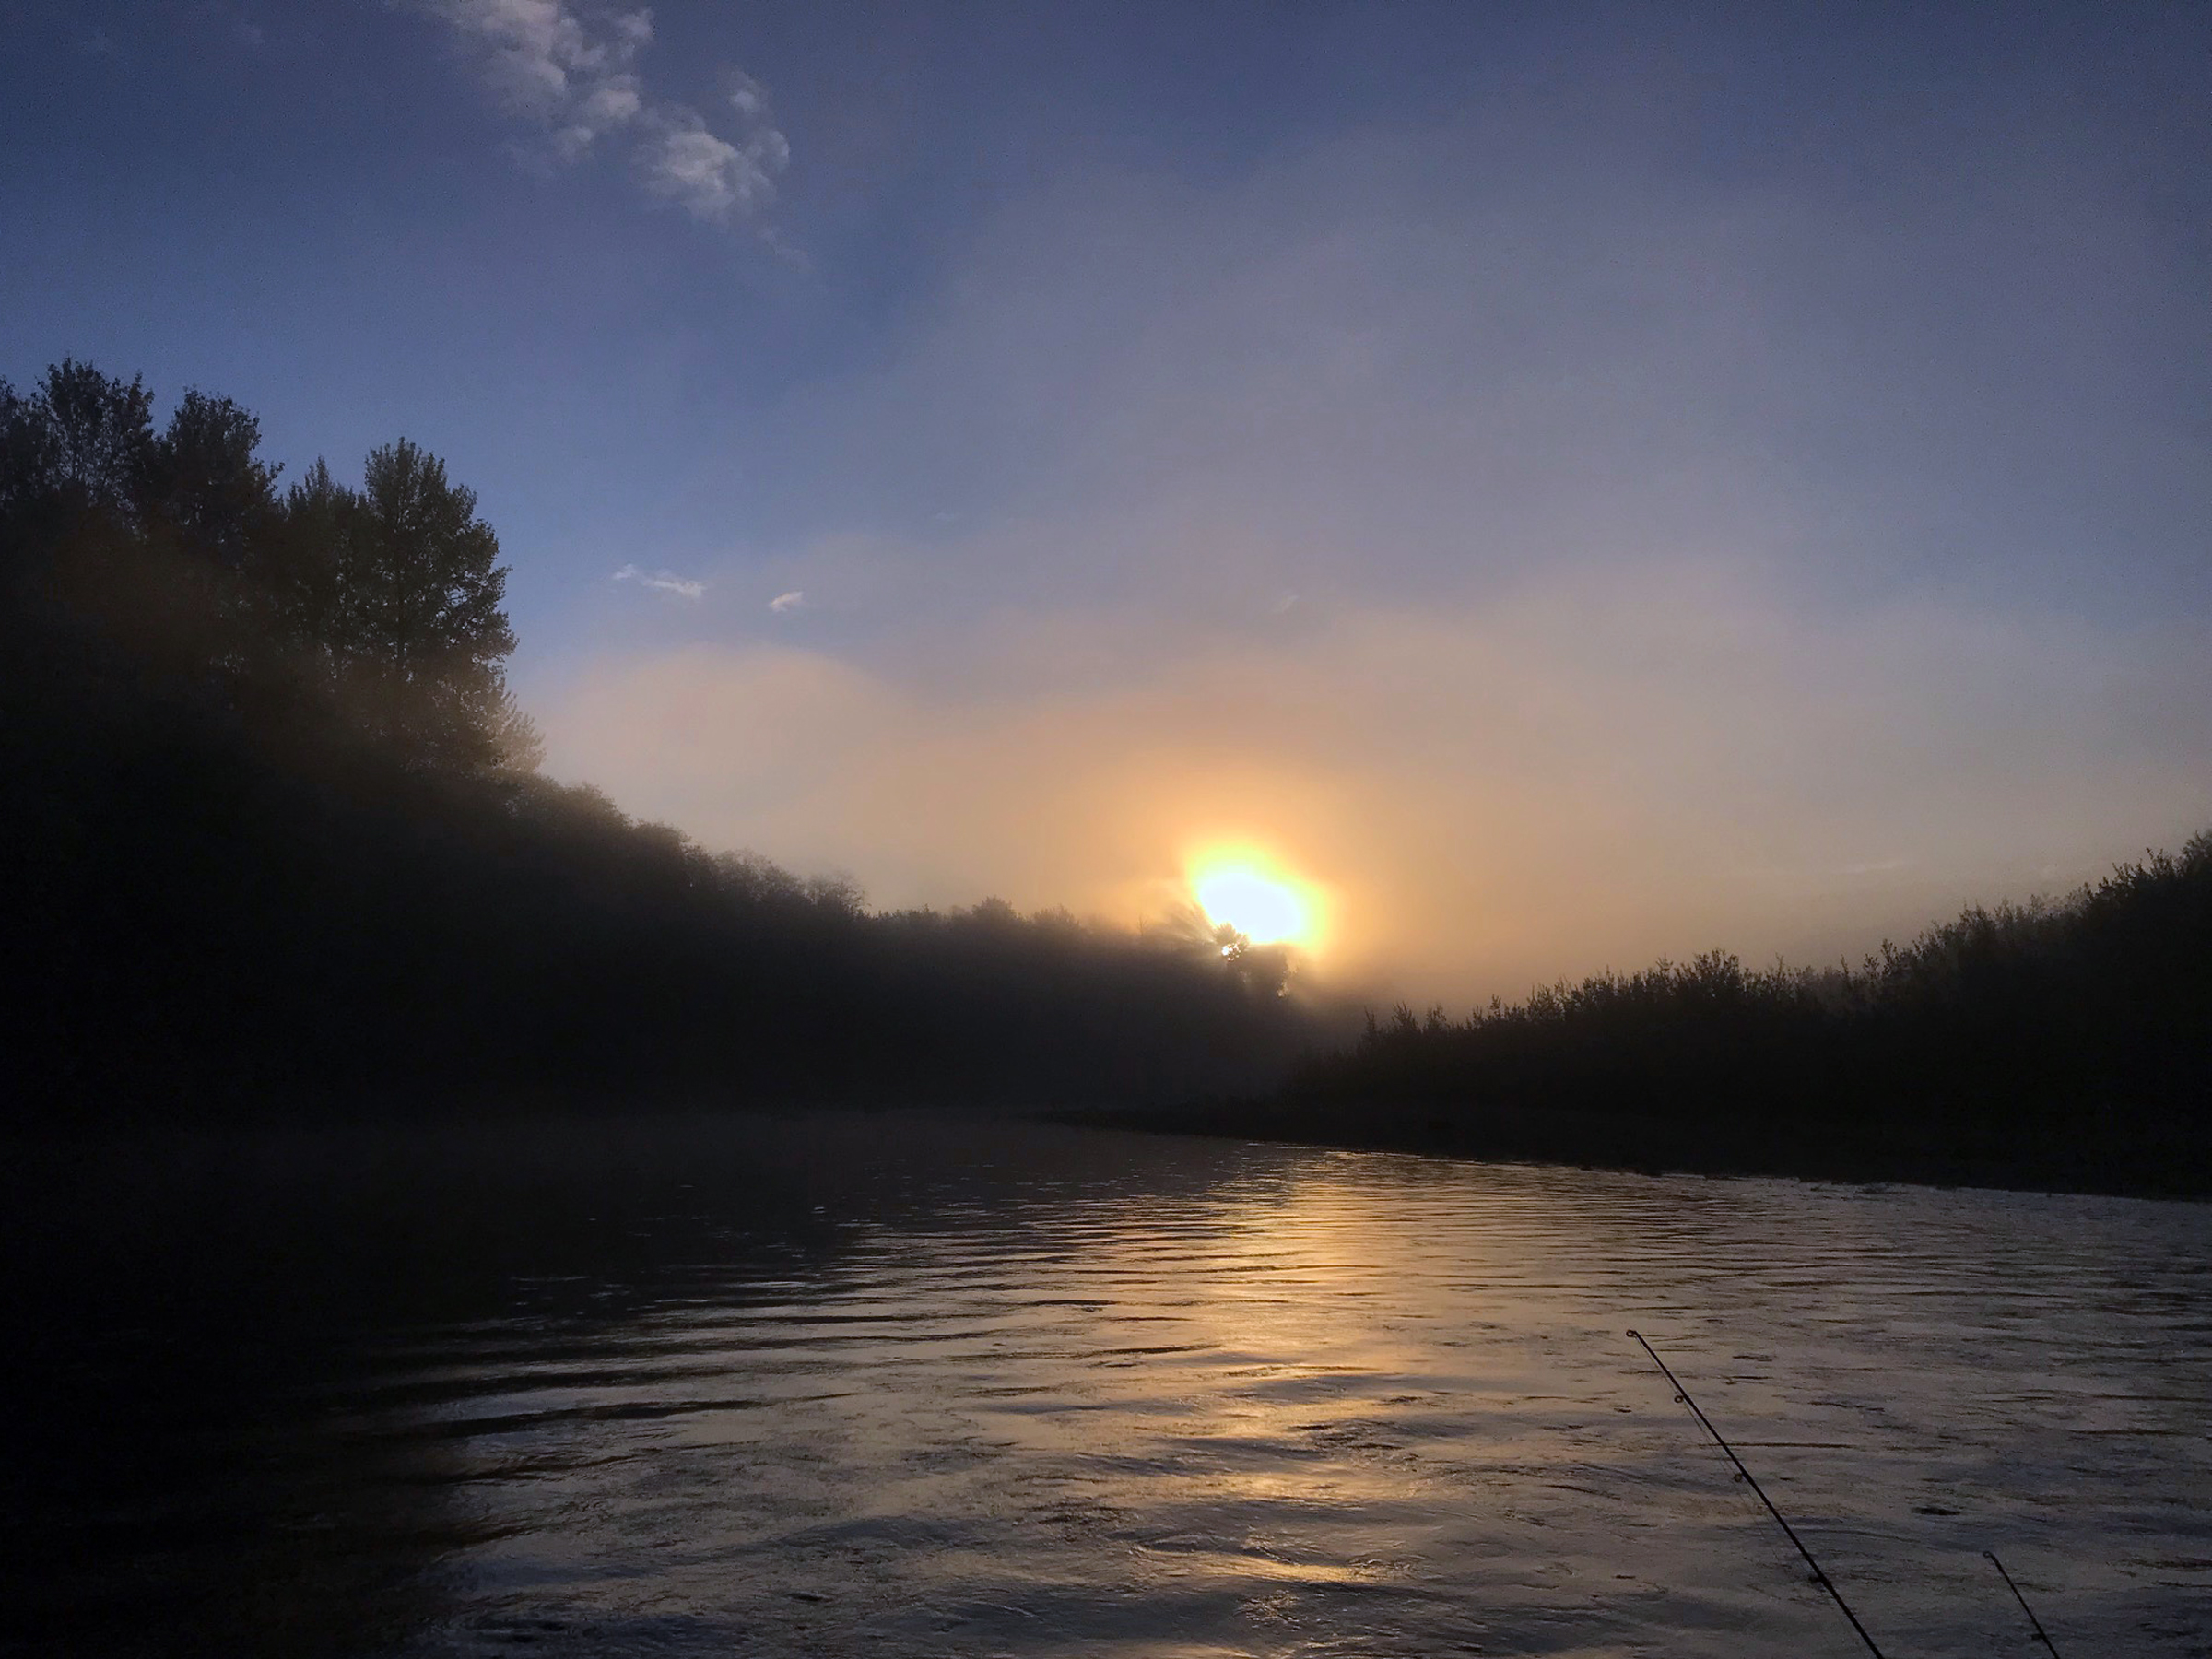 Sunrise over the Humptulips River.